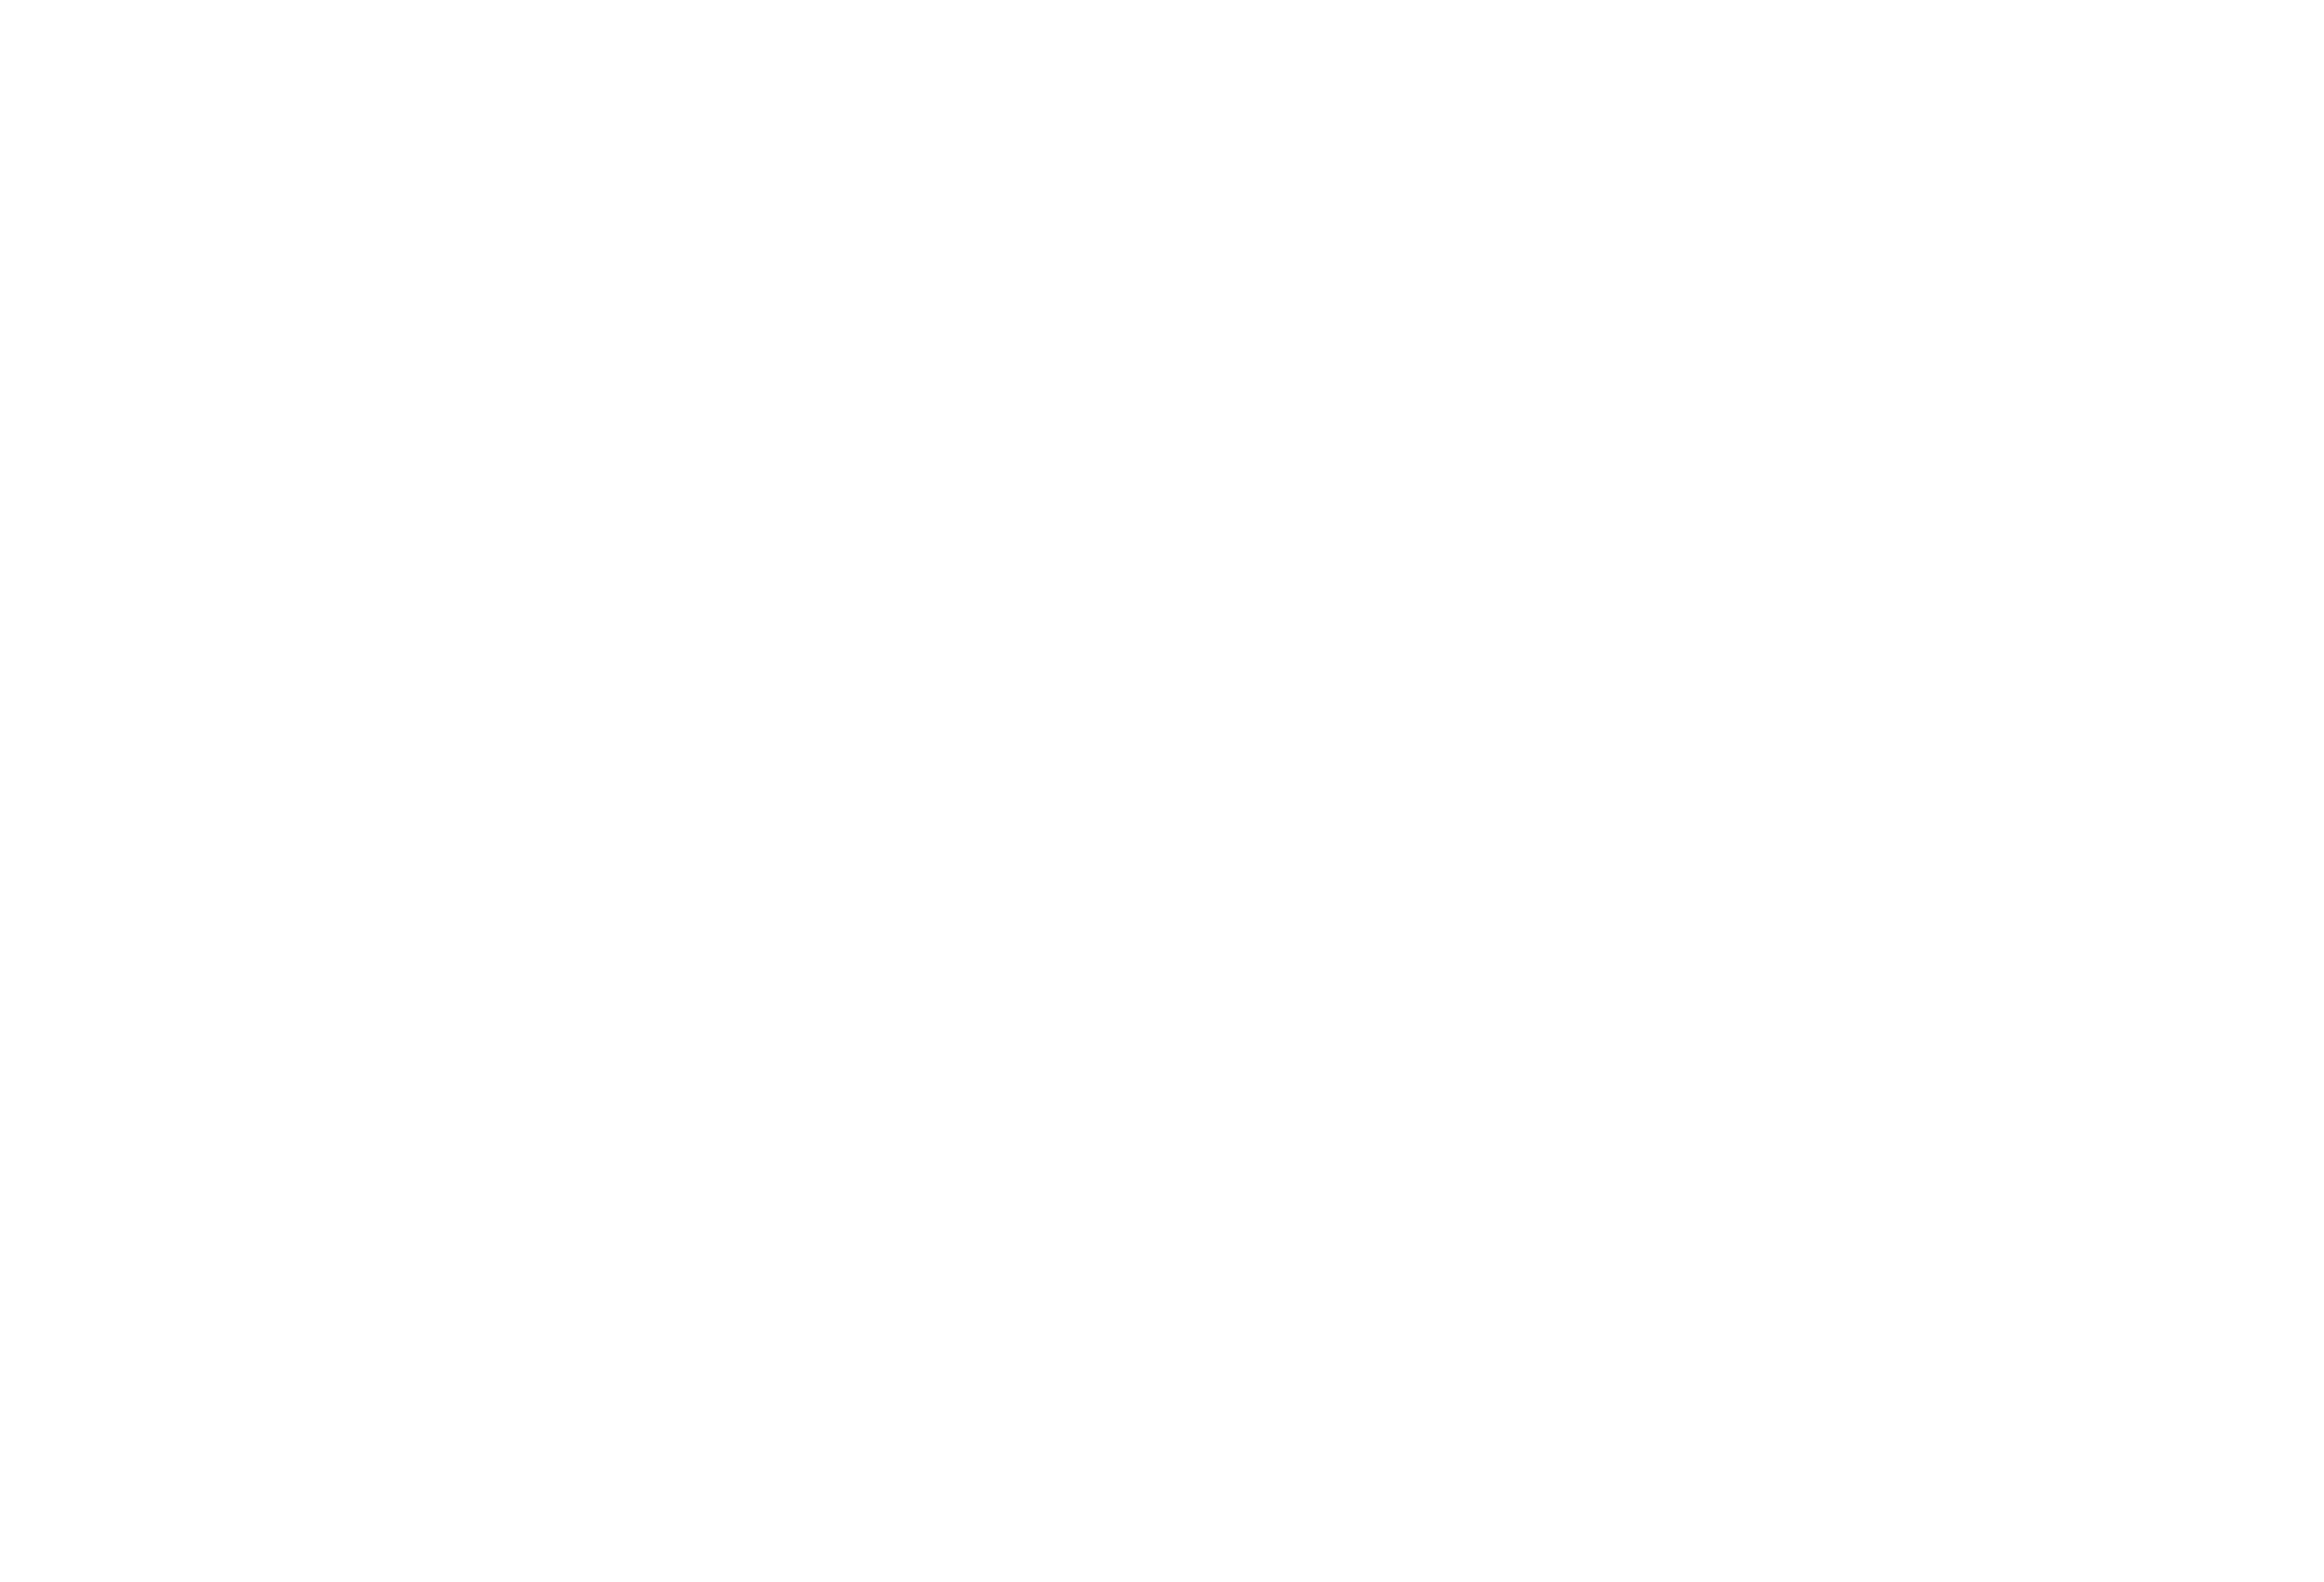 Steeplechase of Charleston